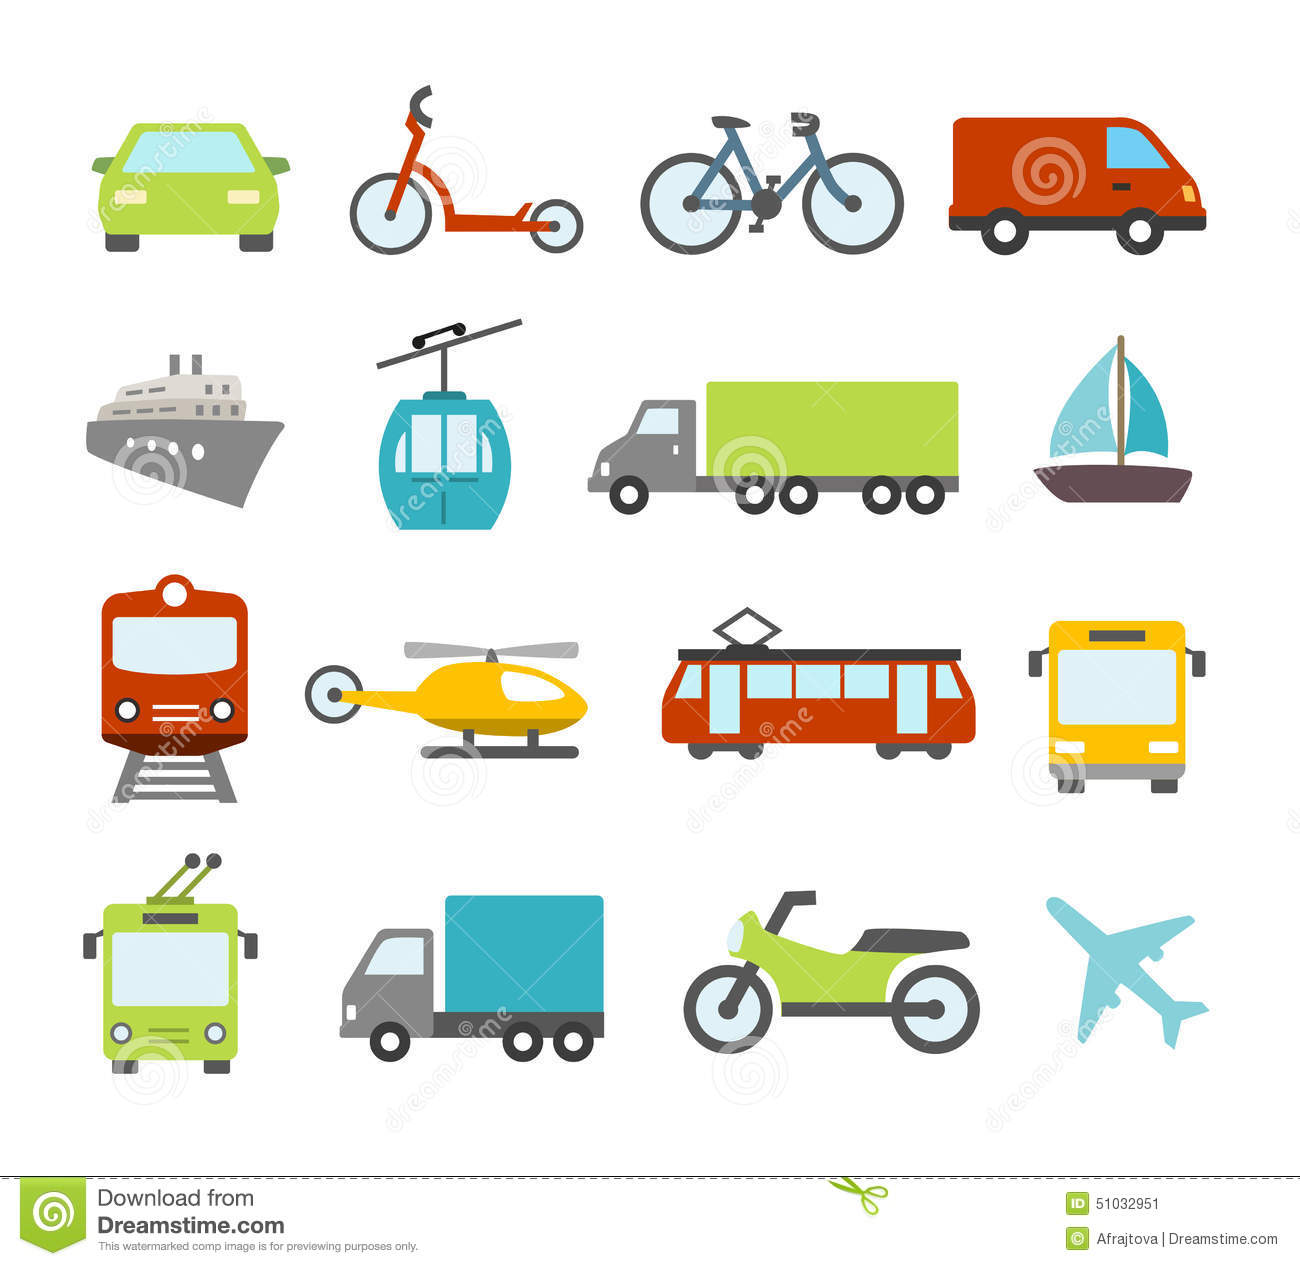 Cars Names And Logos >> Transport Icons In Flat Design Style Stock Vector - Illustration of public, helicopter: 51032951